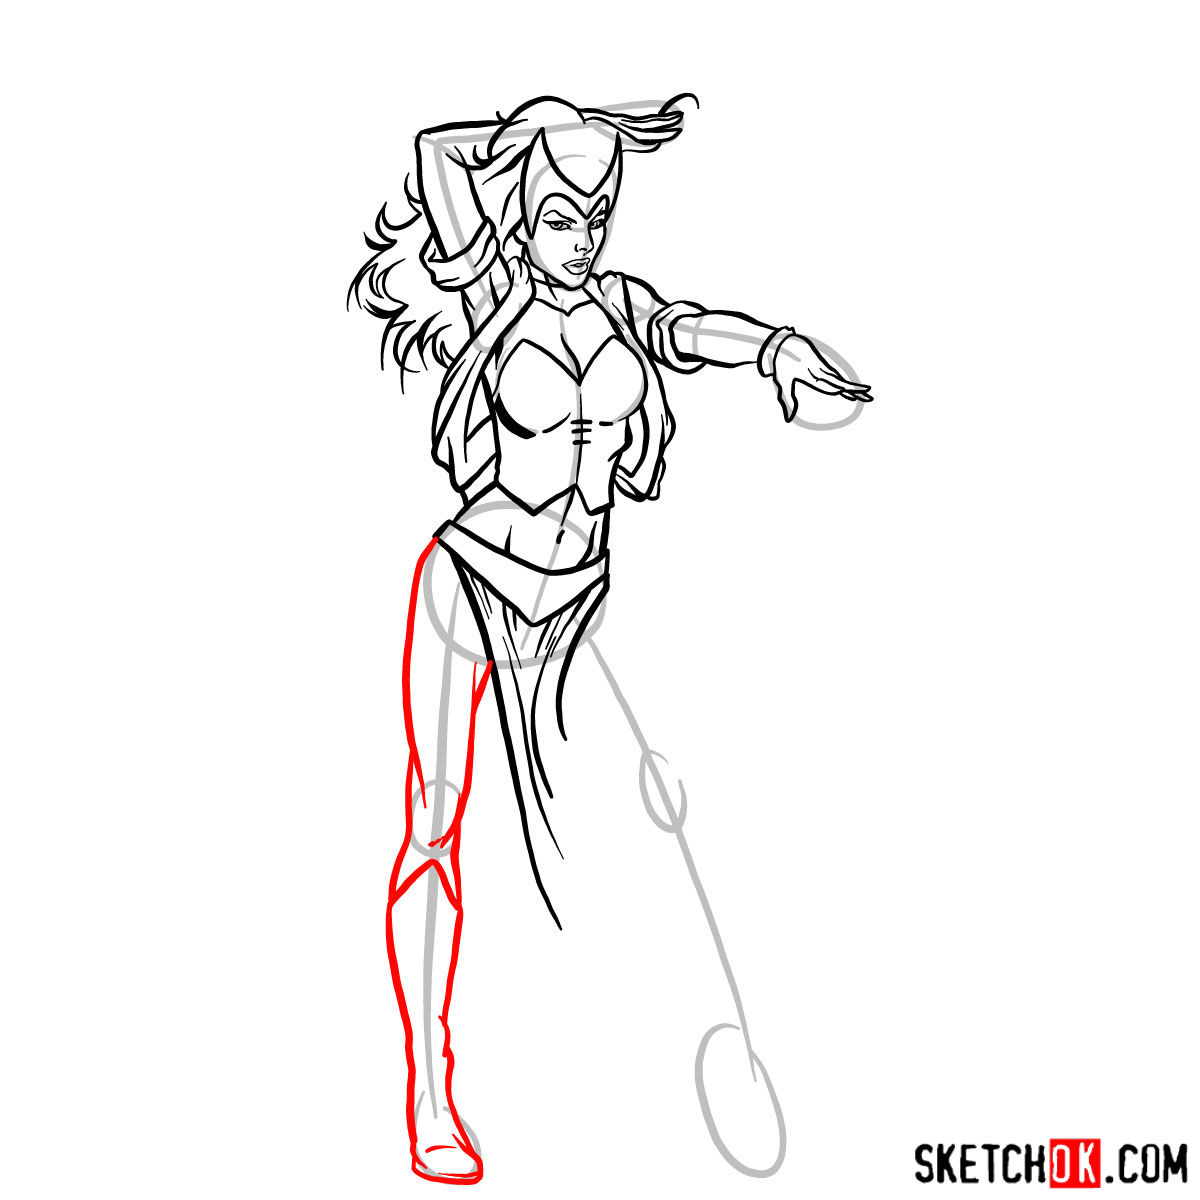 How to draw Scarlet Witch from Marvel Comics - step 11